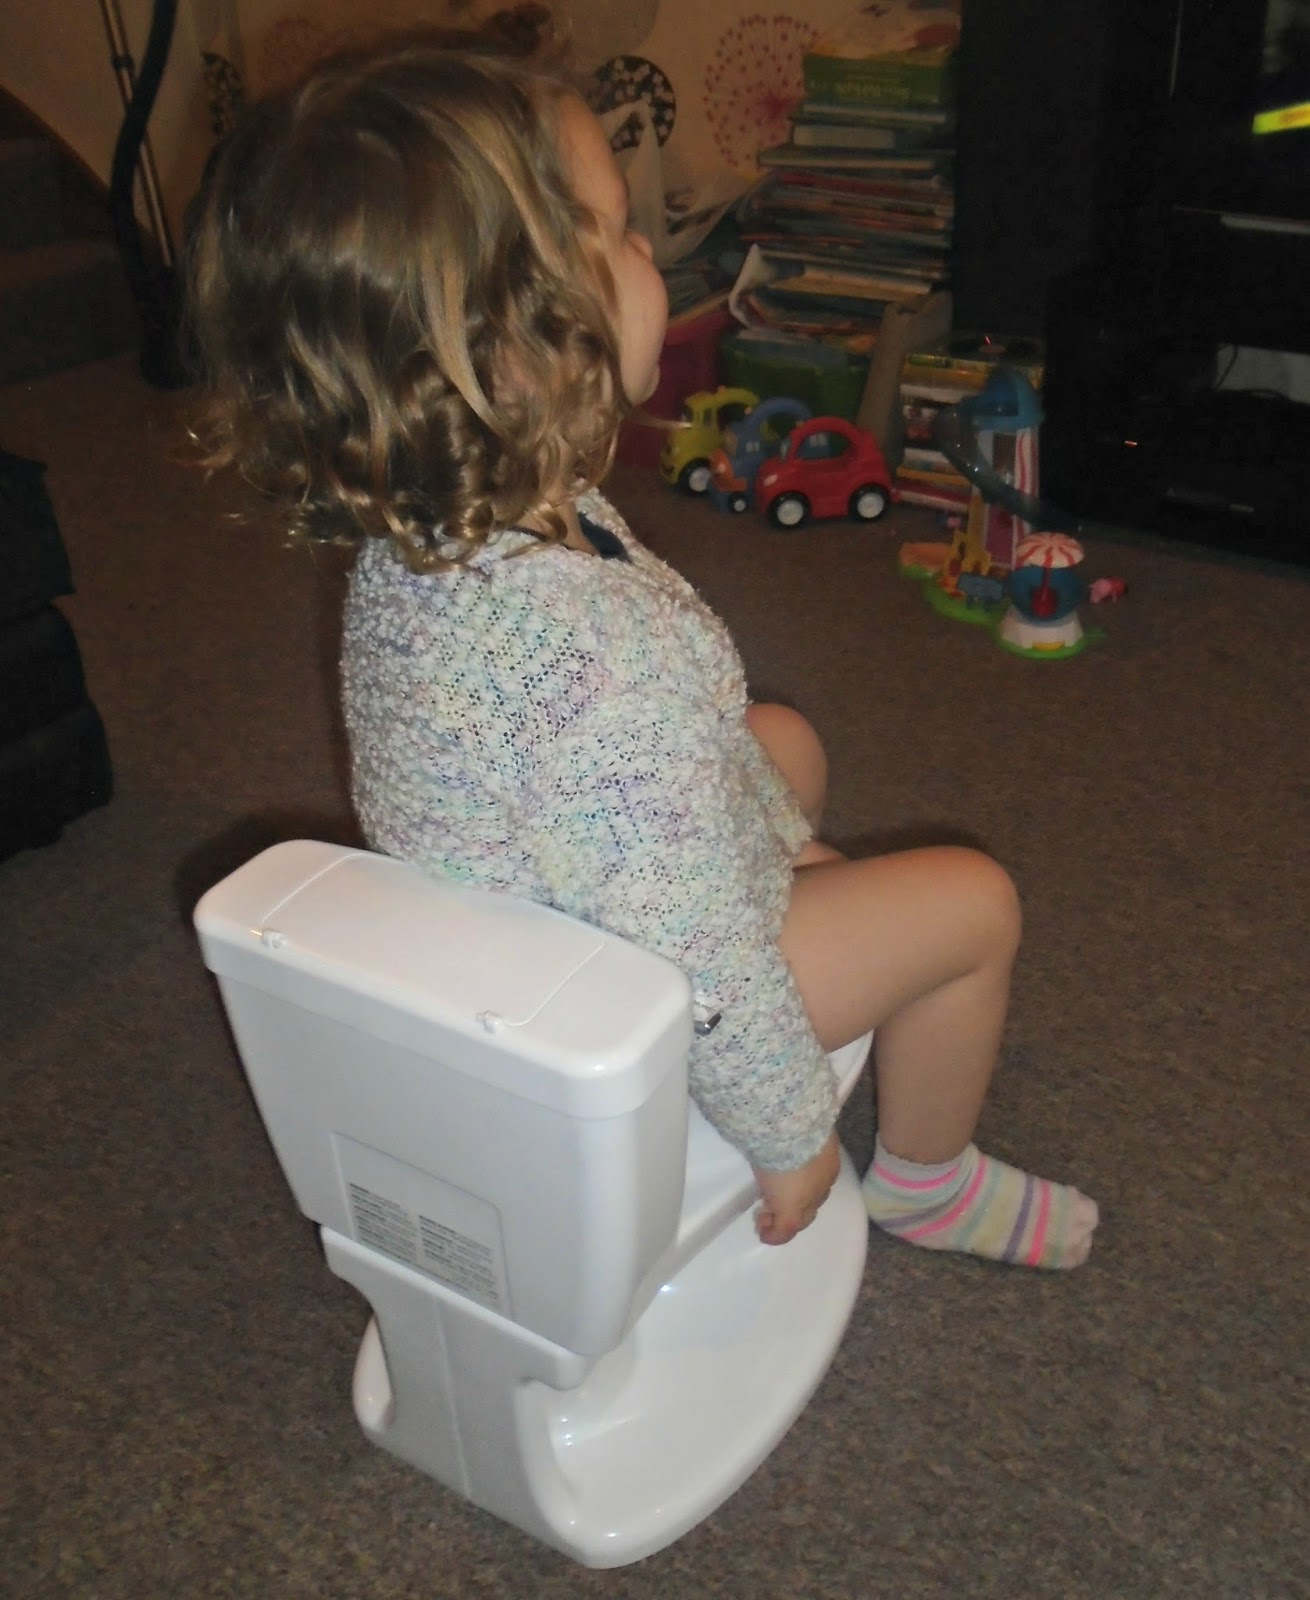 d3e1382d465 Over all we give the Summer Infant my size potty a thumbs up. It has  definitely given Evelyn more of an interest in using the potty which is a  big bonus.